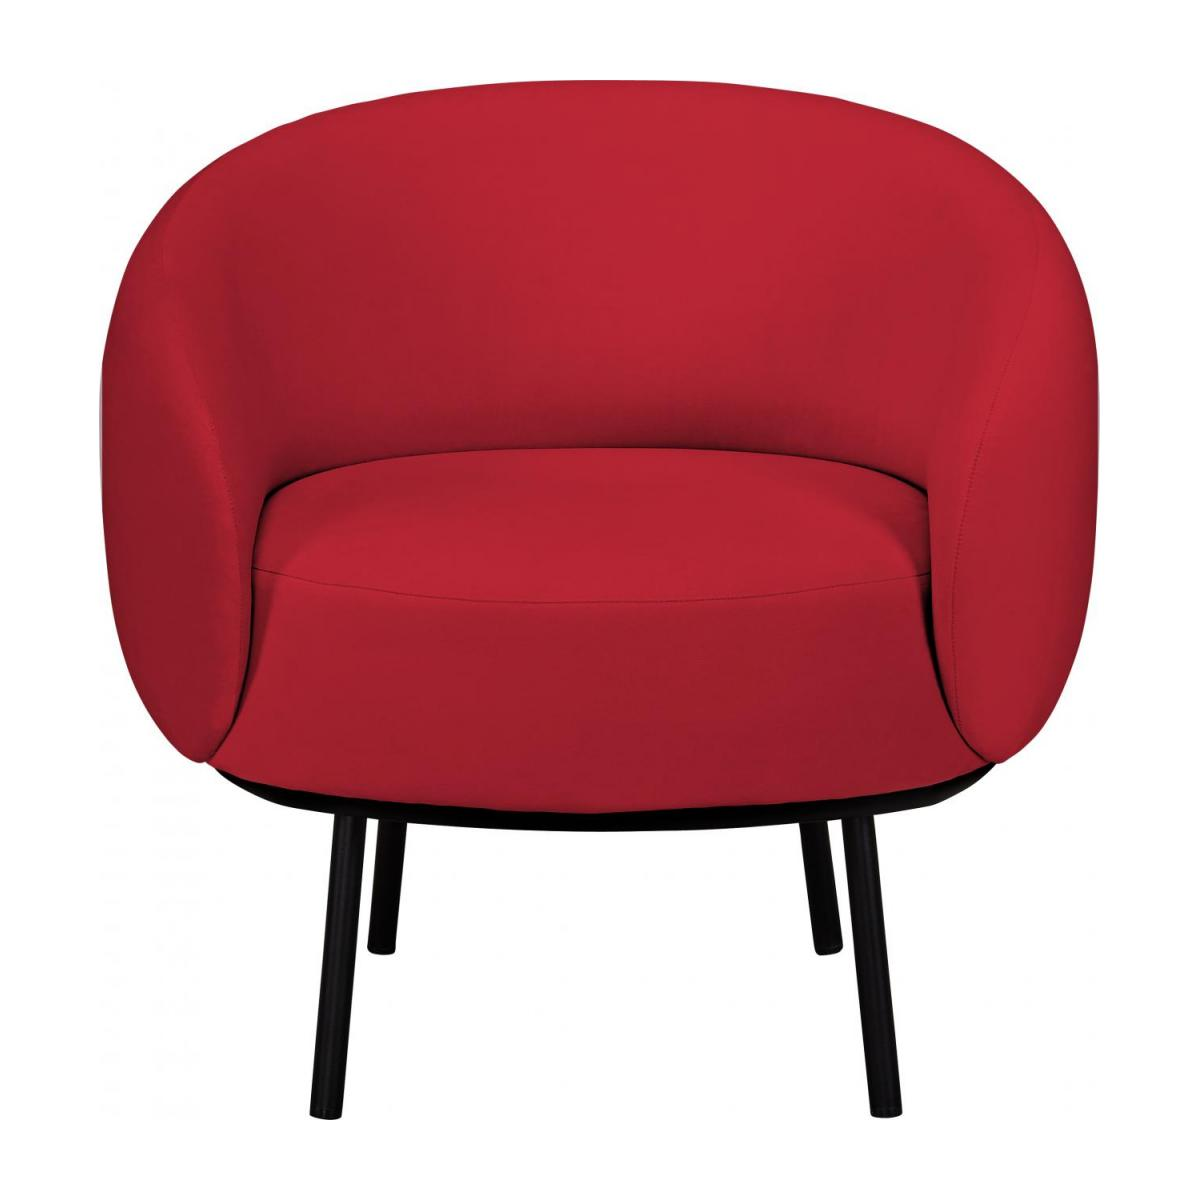 Fauteuil en velours - Rouge - Design by Adrien Carvès n°2